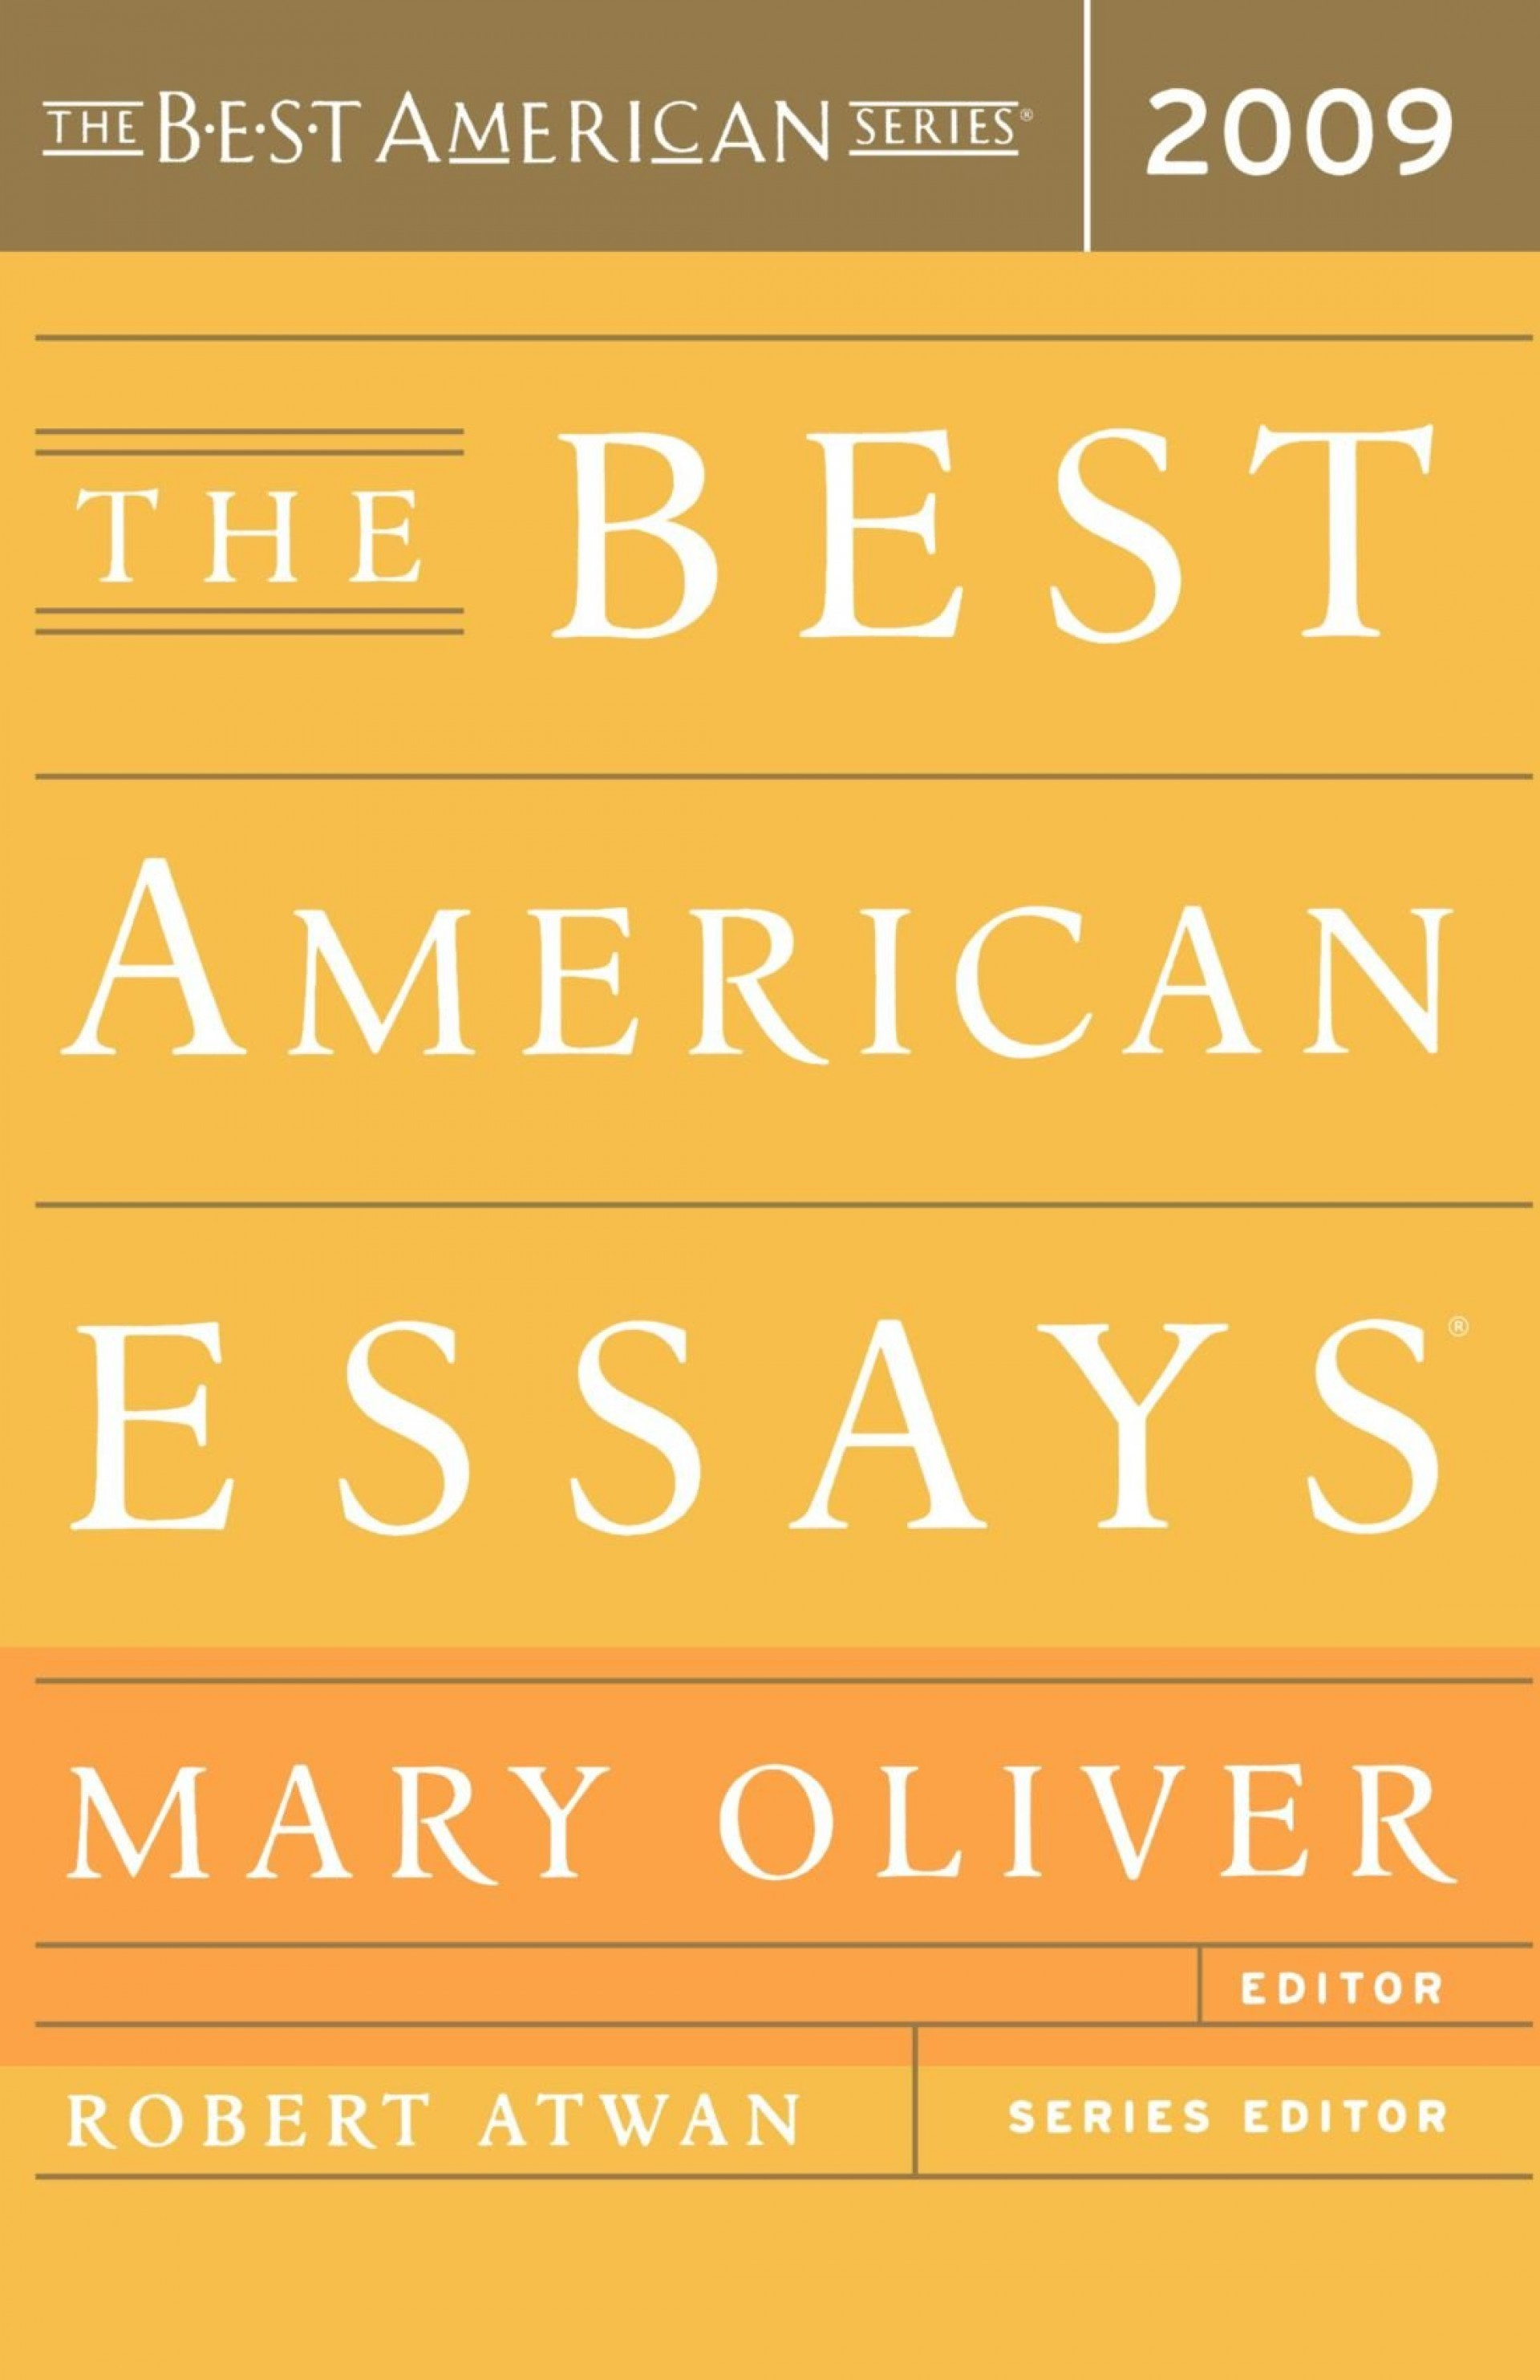 008 617qb5slhfl Essay Example The Best American Wonderful Essays Of Century Table Contents 2013 Pdf Download 1920